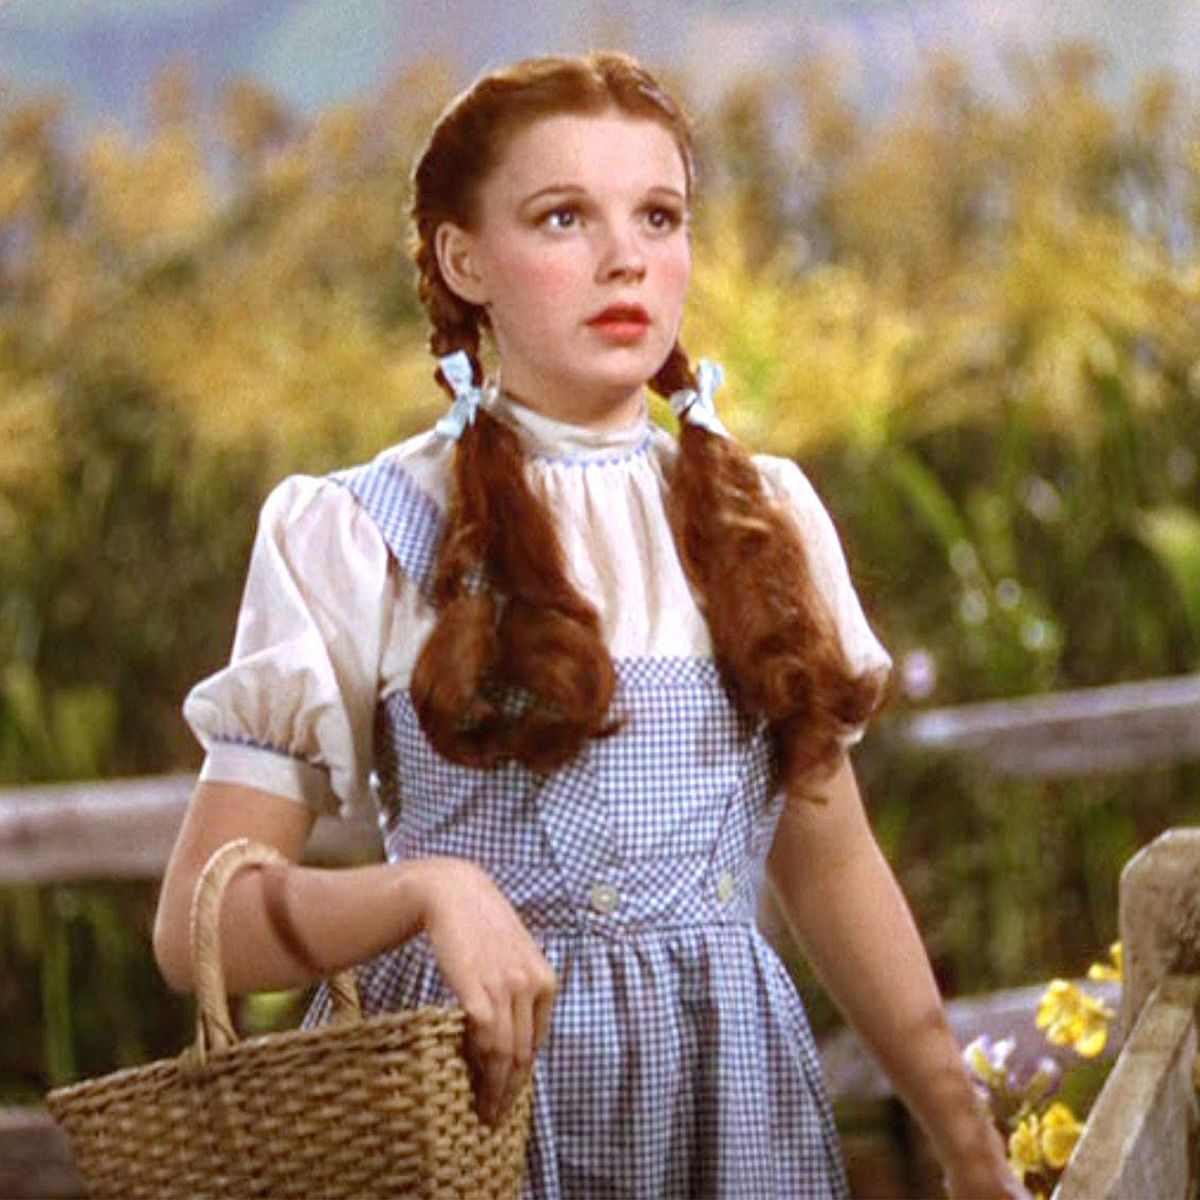 Redhead Halloween Hairstyle Tips Dorothy Wizard Of Oz Dorothy Wizard Of Oz Wizard Of Oz Wizard Of Oz Movie